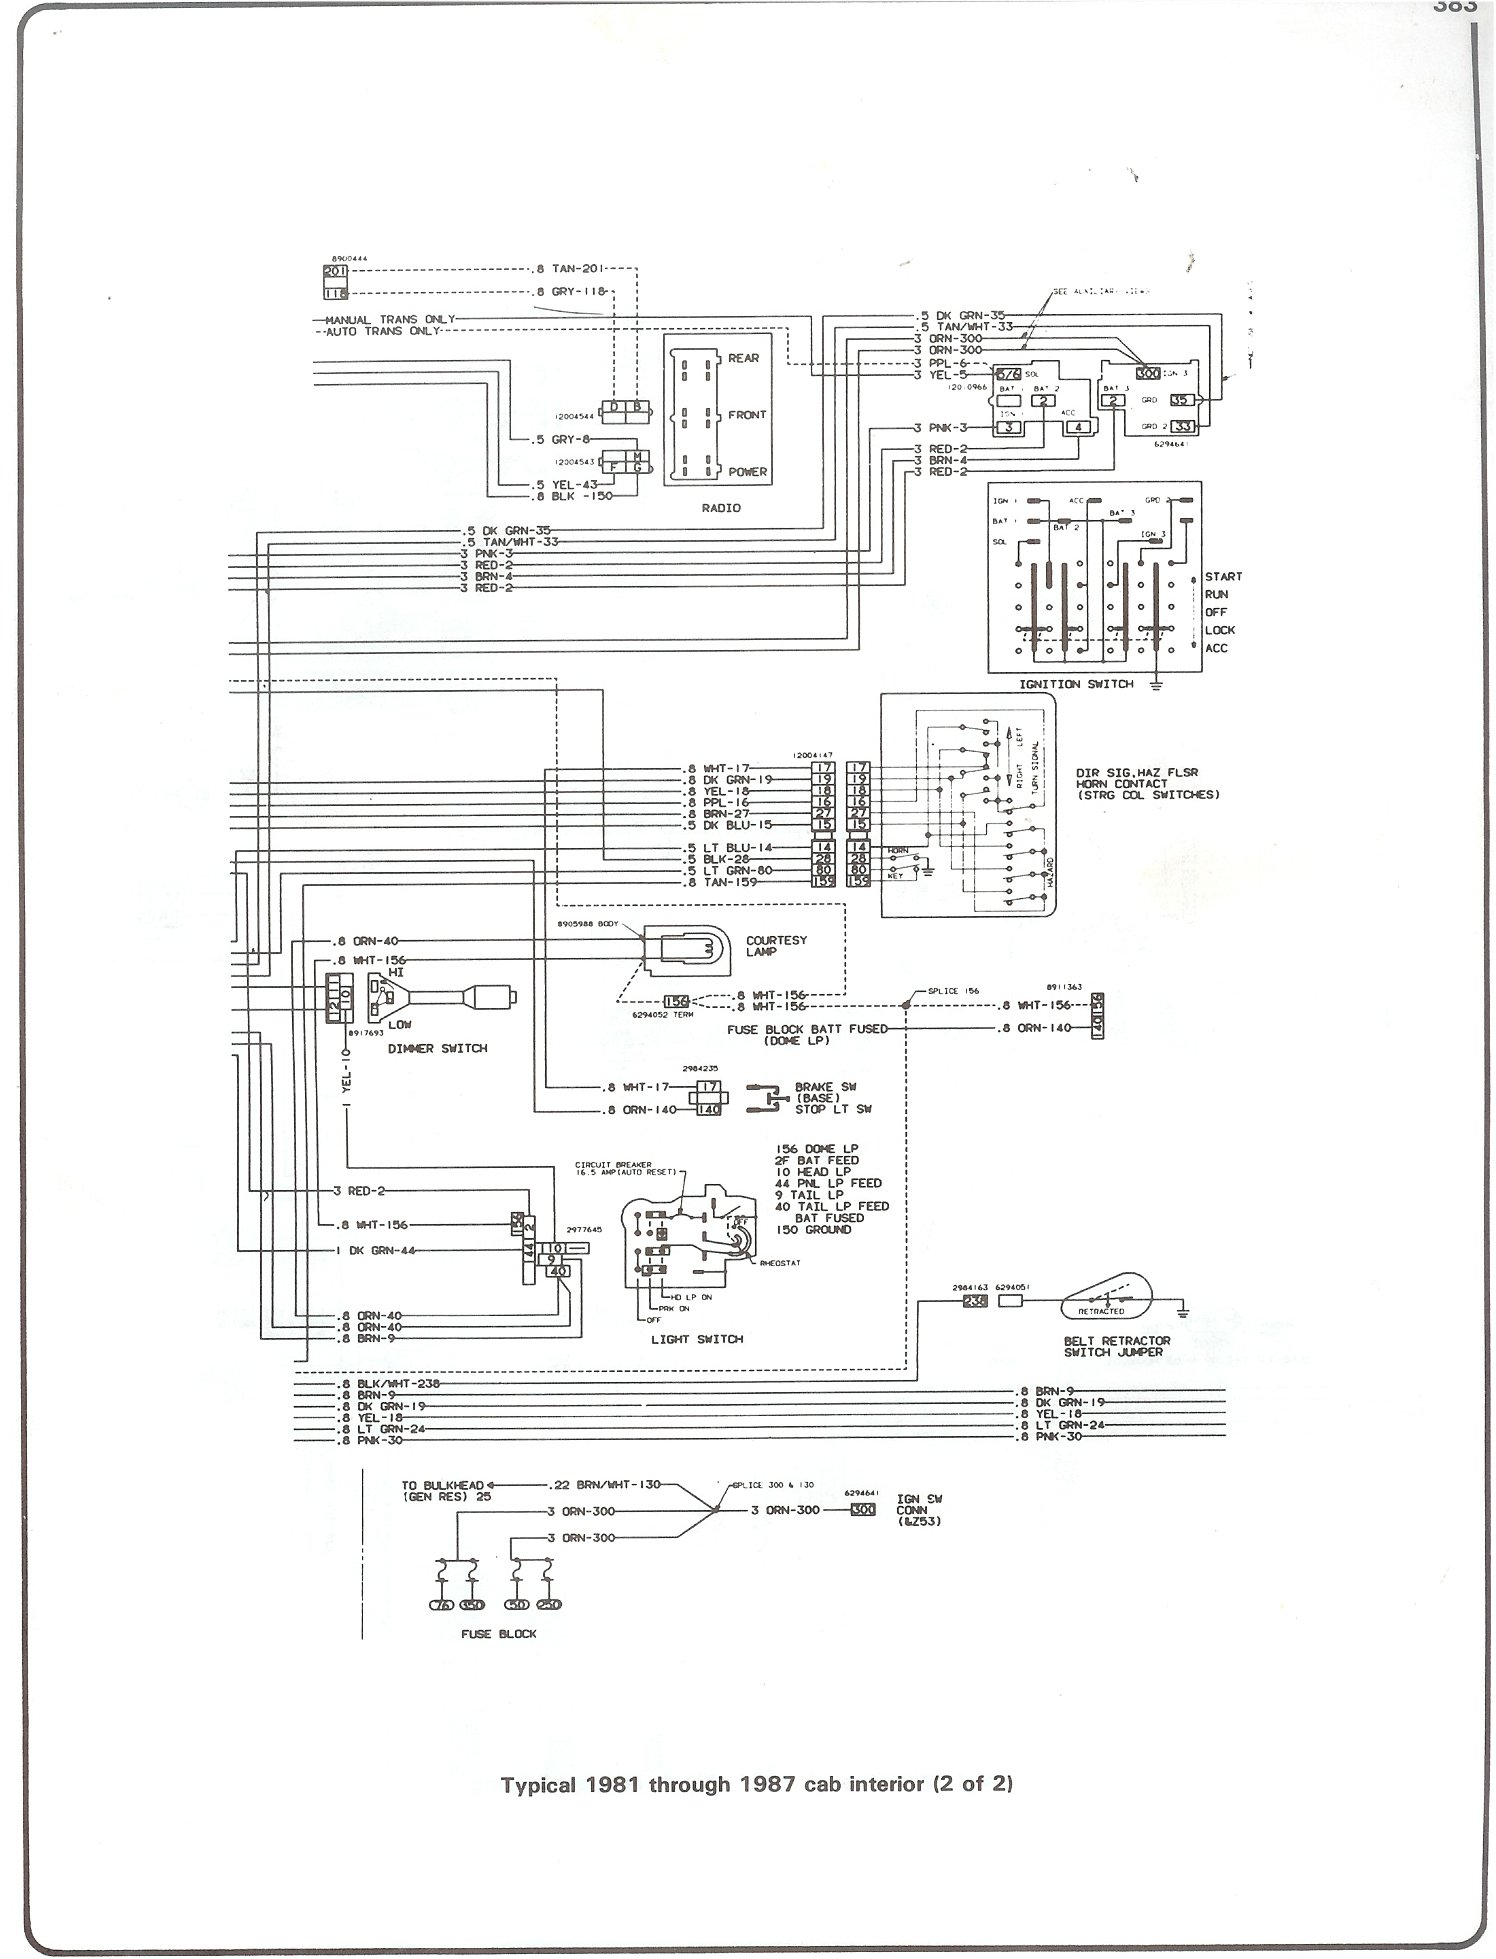 1965 chevy c10 pickup truck fuse box diagram wiring